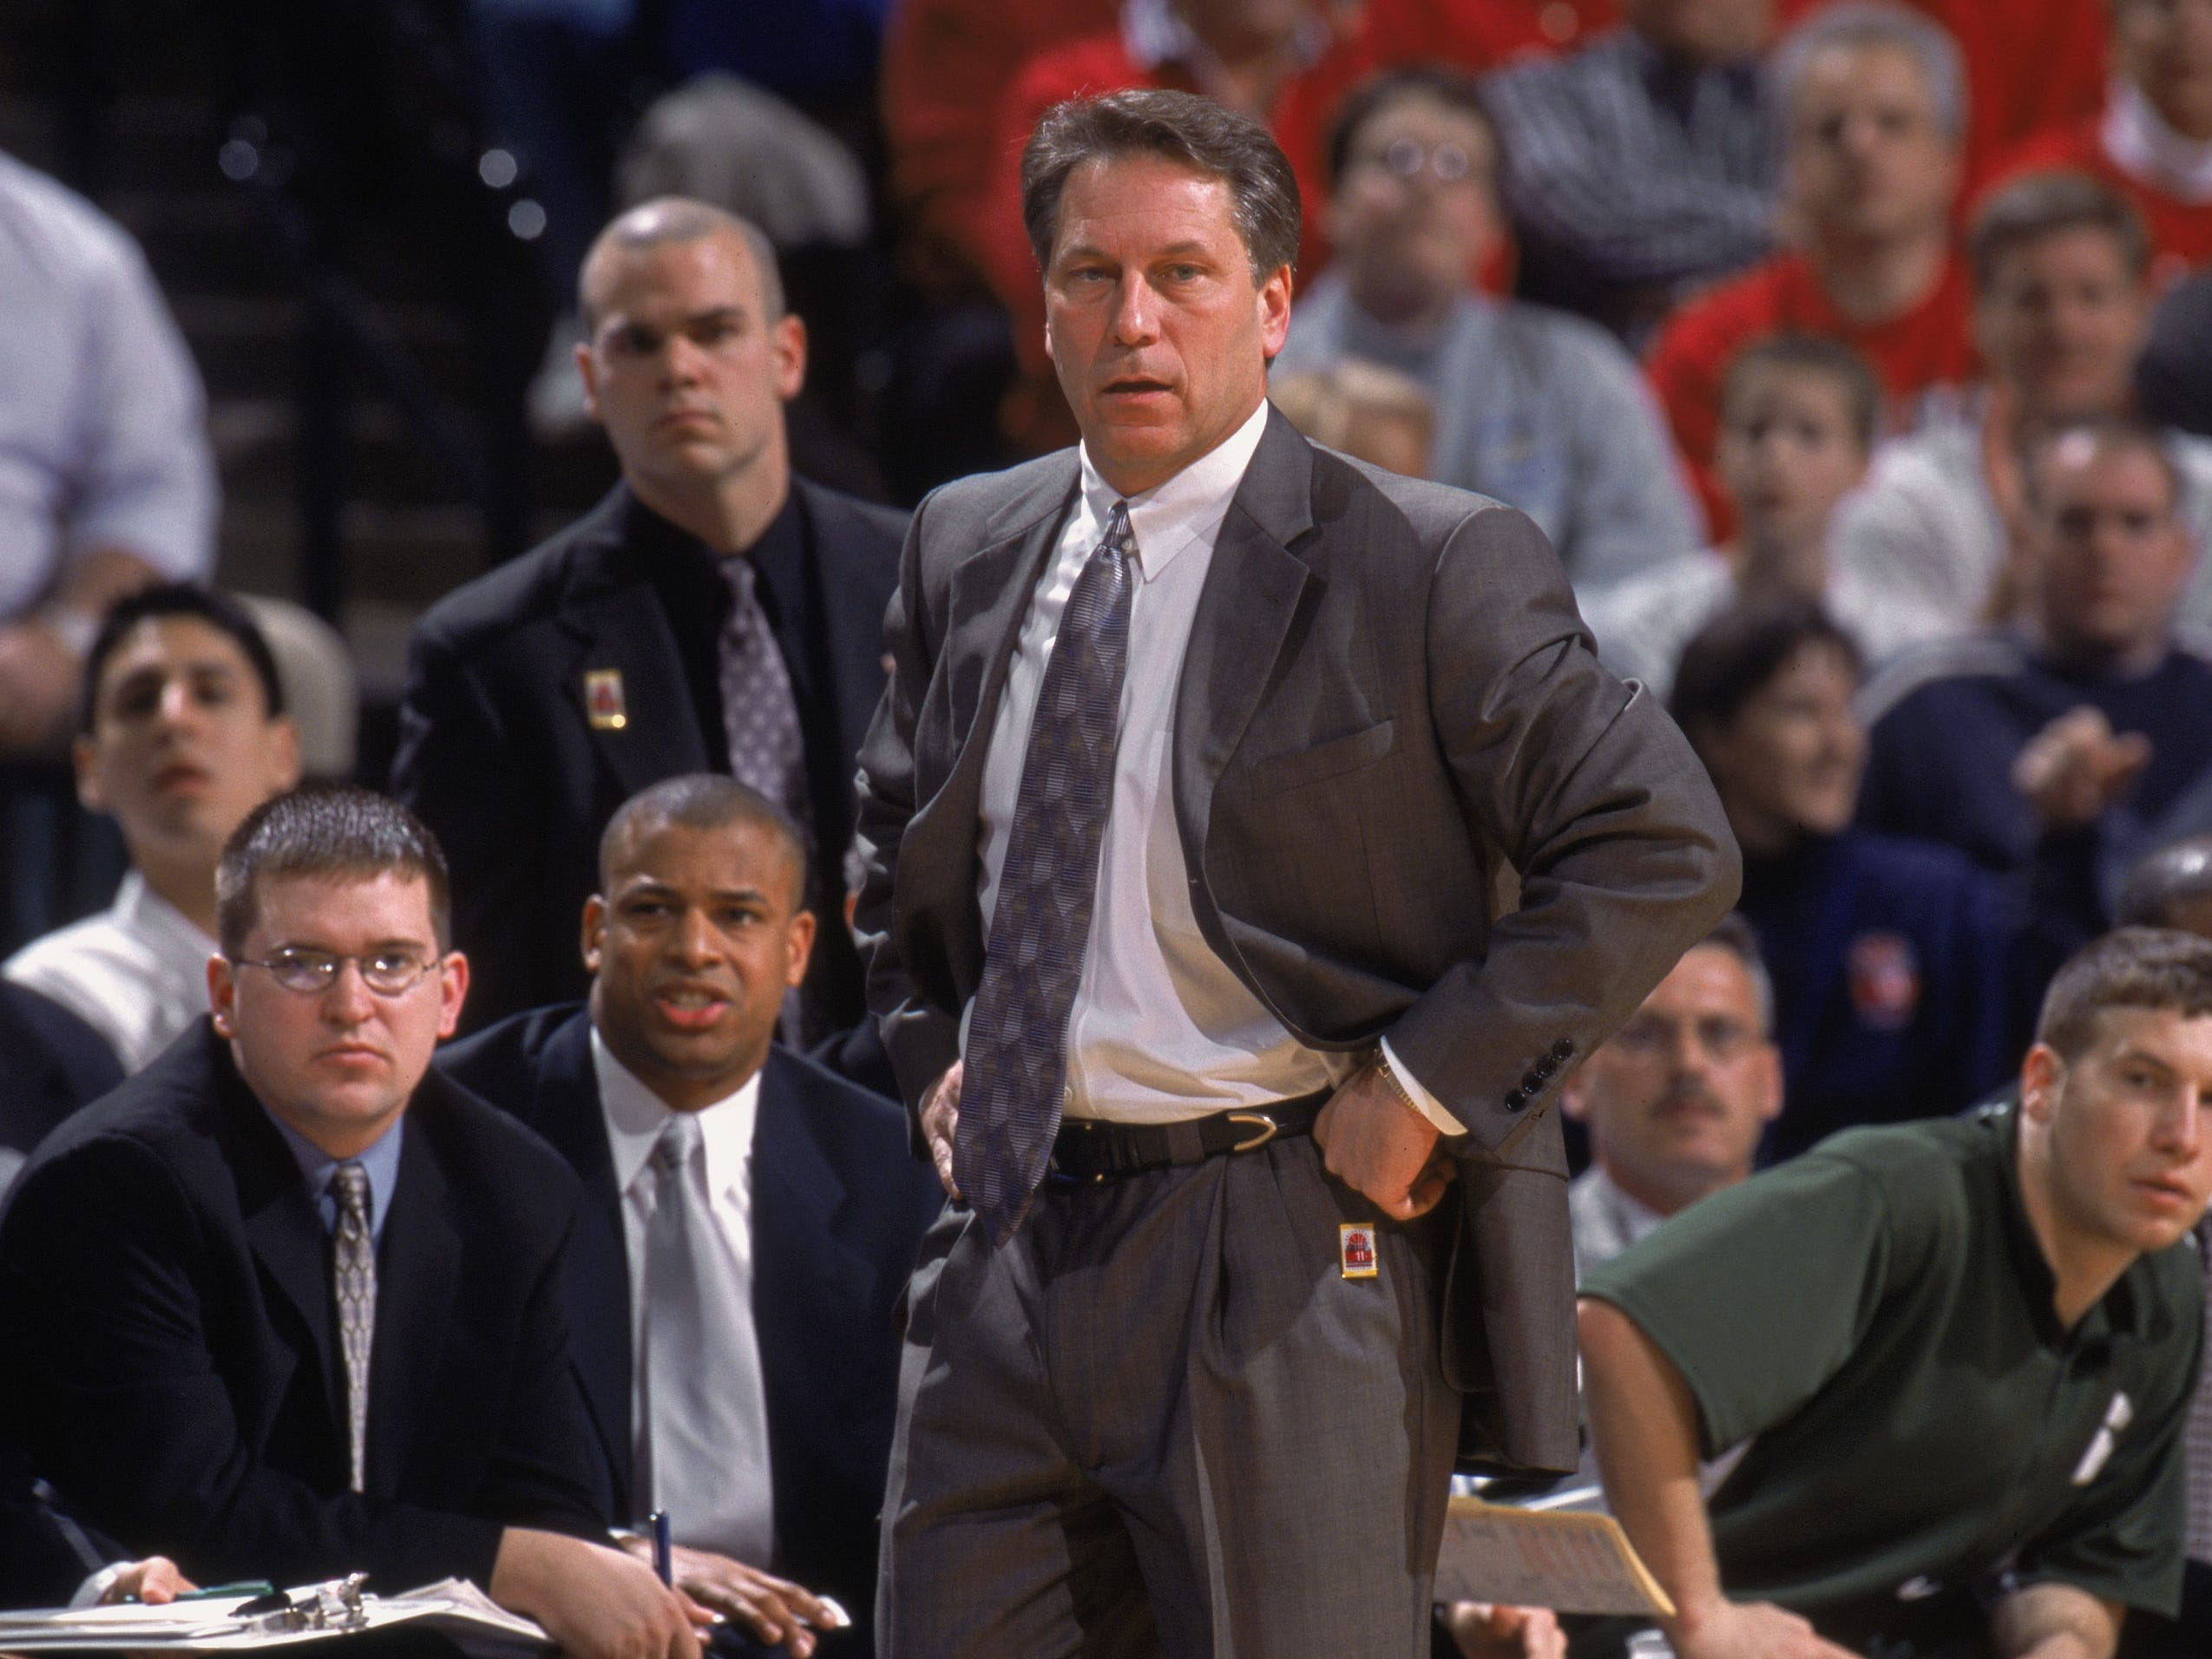 Head Coach Tom Izzo of the Michigan State  looks on from the sidelines during the BIG 10 Tournament against the Indiana Hoosiers at Conseco Fieldhouse in Indianapolis, Indiana. The Hoosiers defeated the Spartans 69-56 in March 2002. Mark Montgomery is second from left.